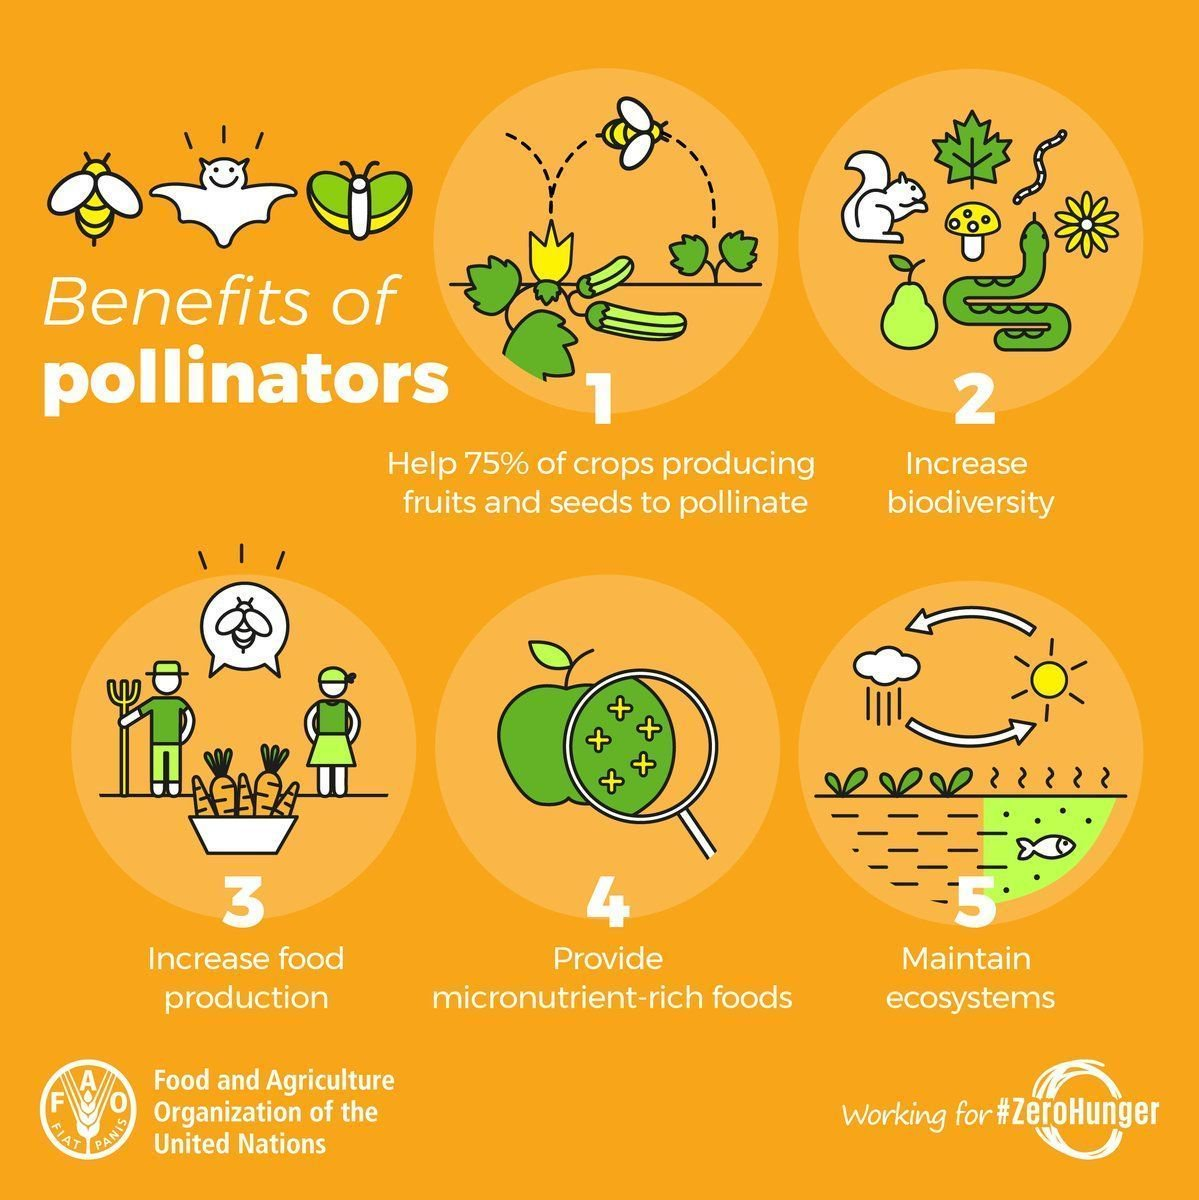 From increased food production to increased biodiversity our pollinators give us so much.